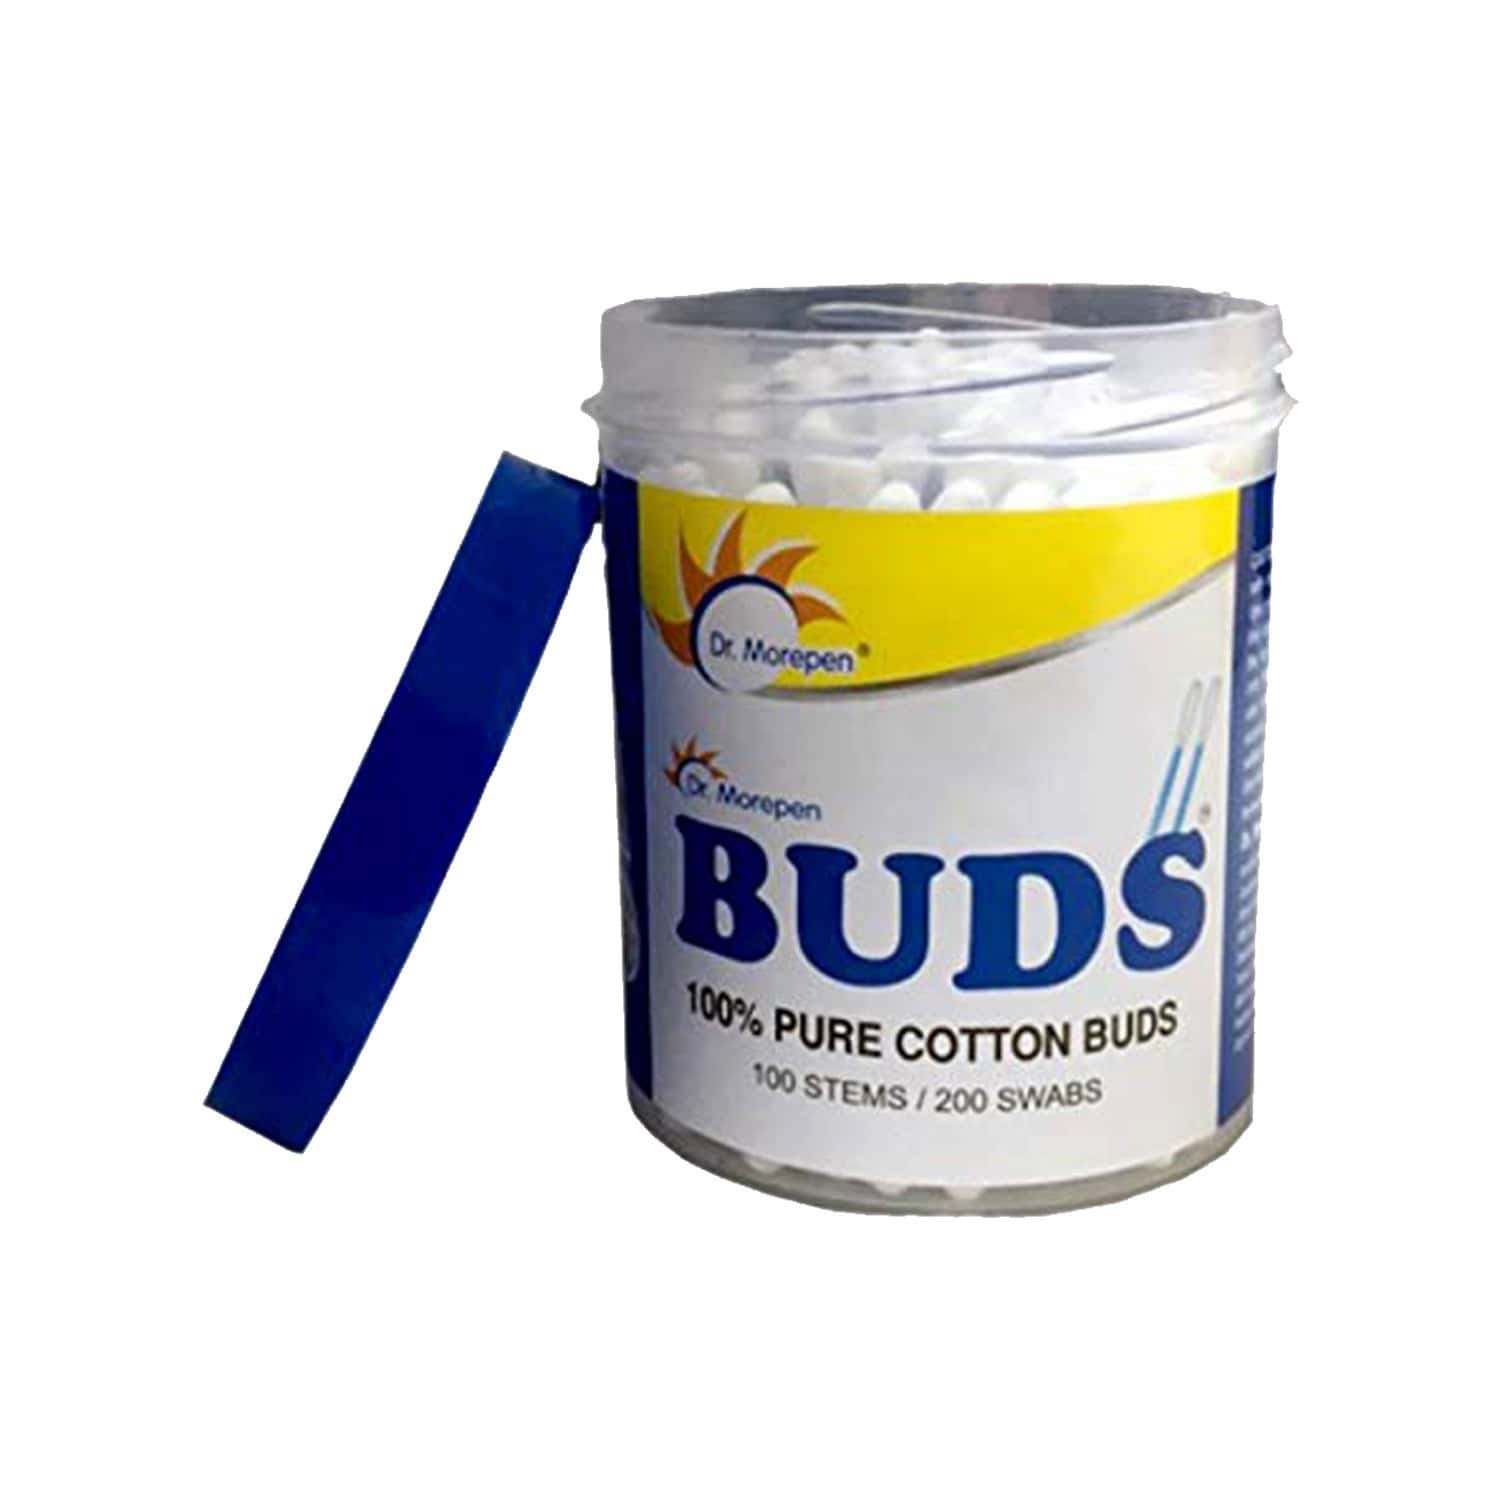 Dr. Morepen Buds 100% Pure Cotton Earbuds (100 Stem/200 Swabs)